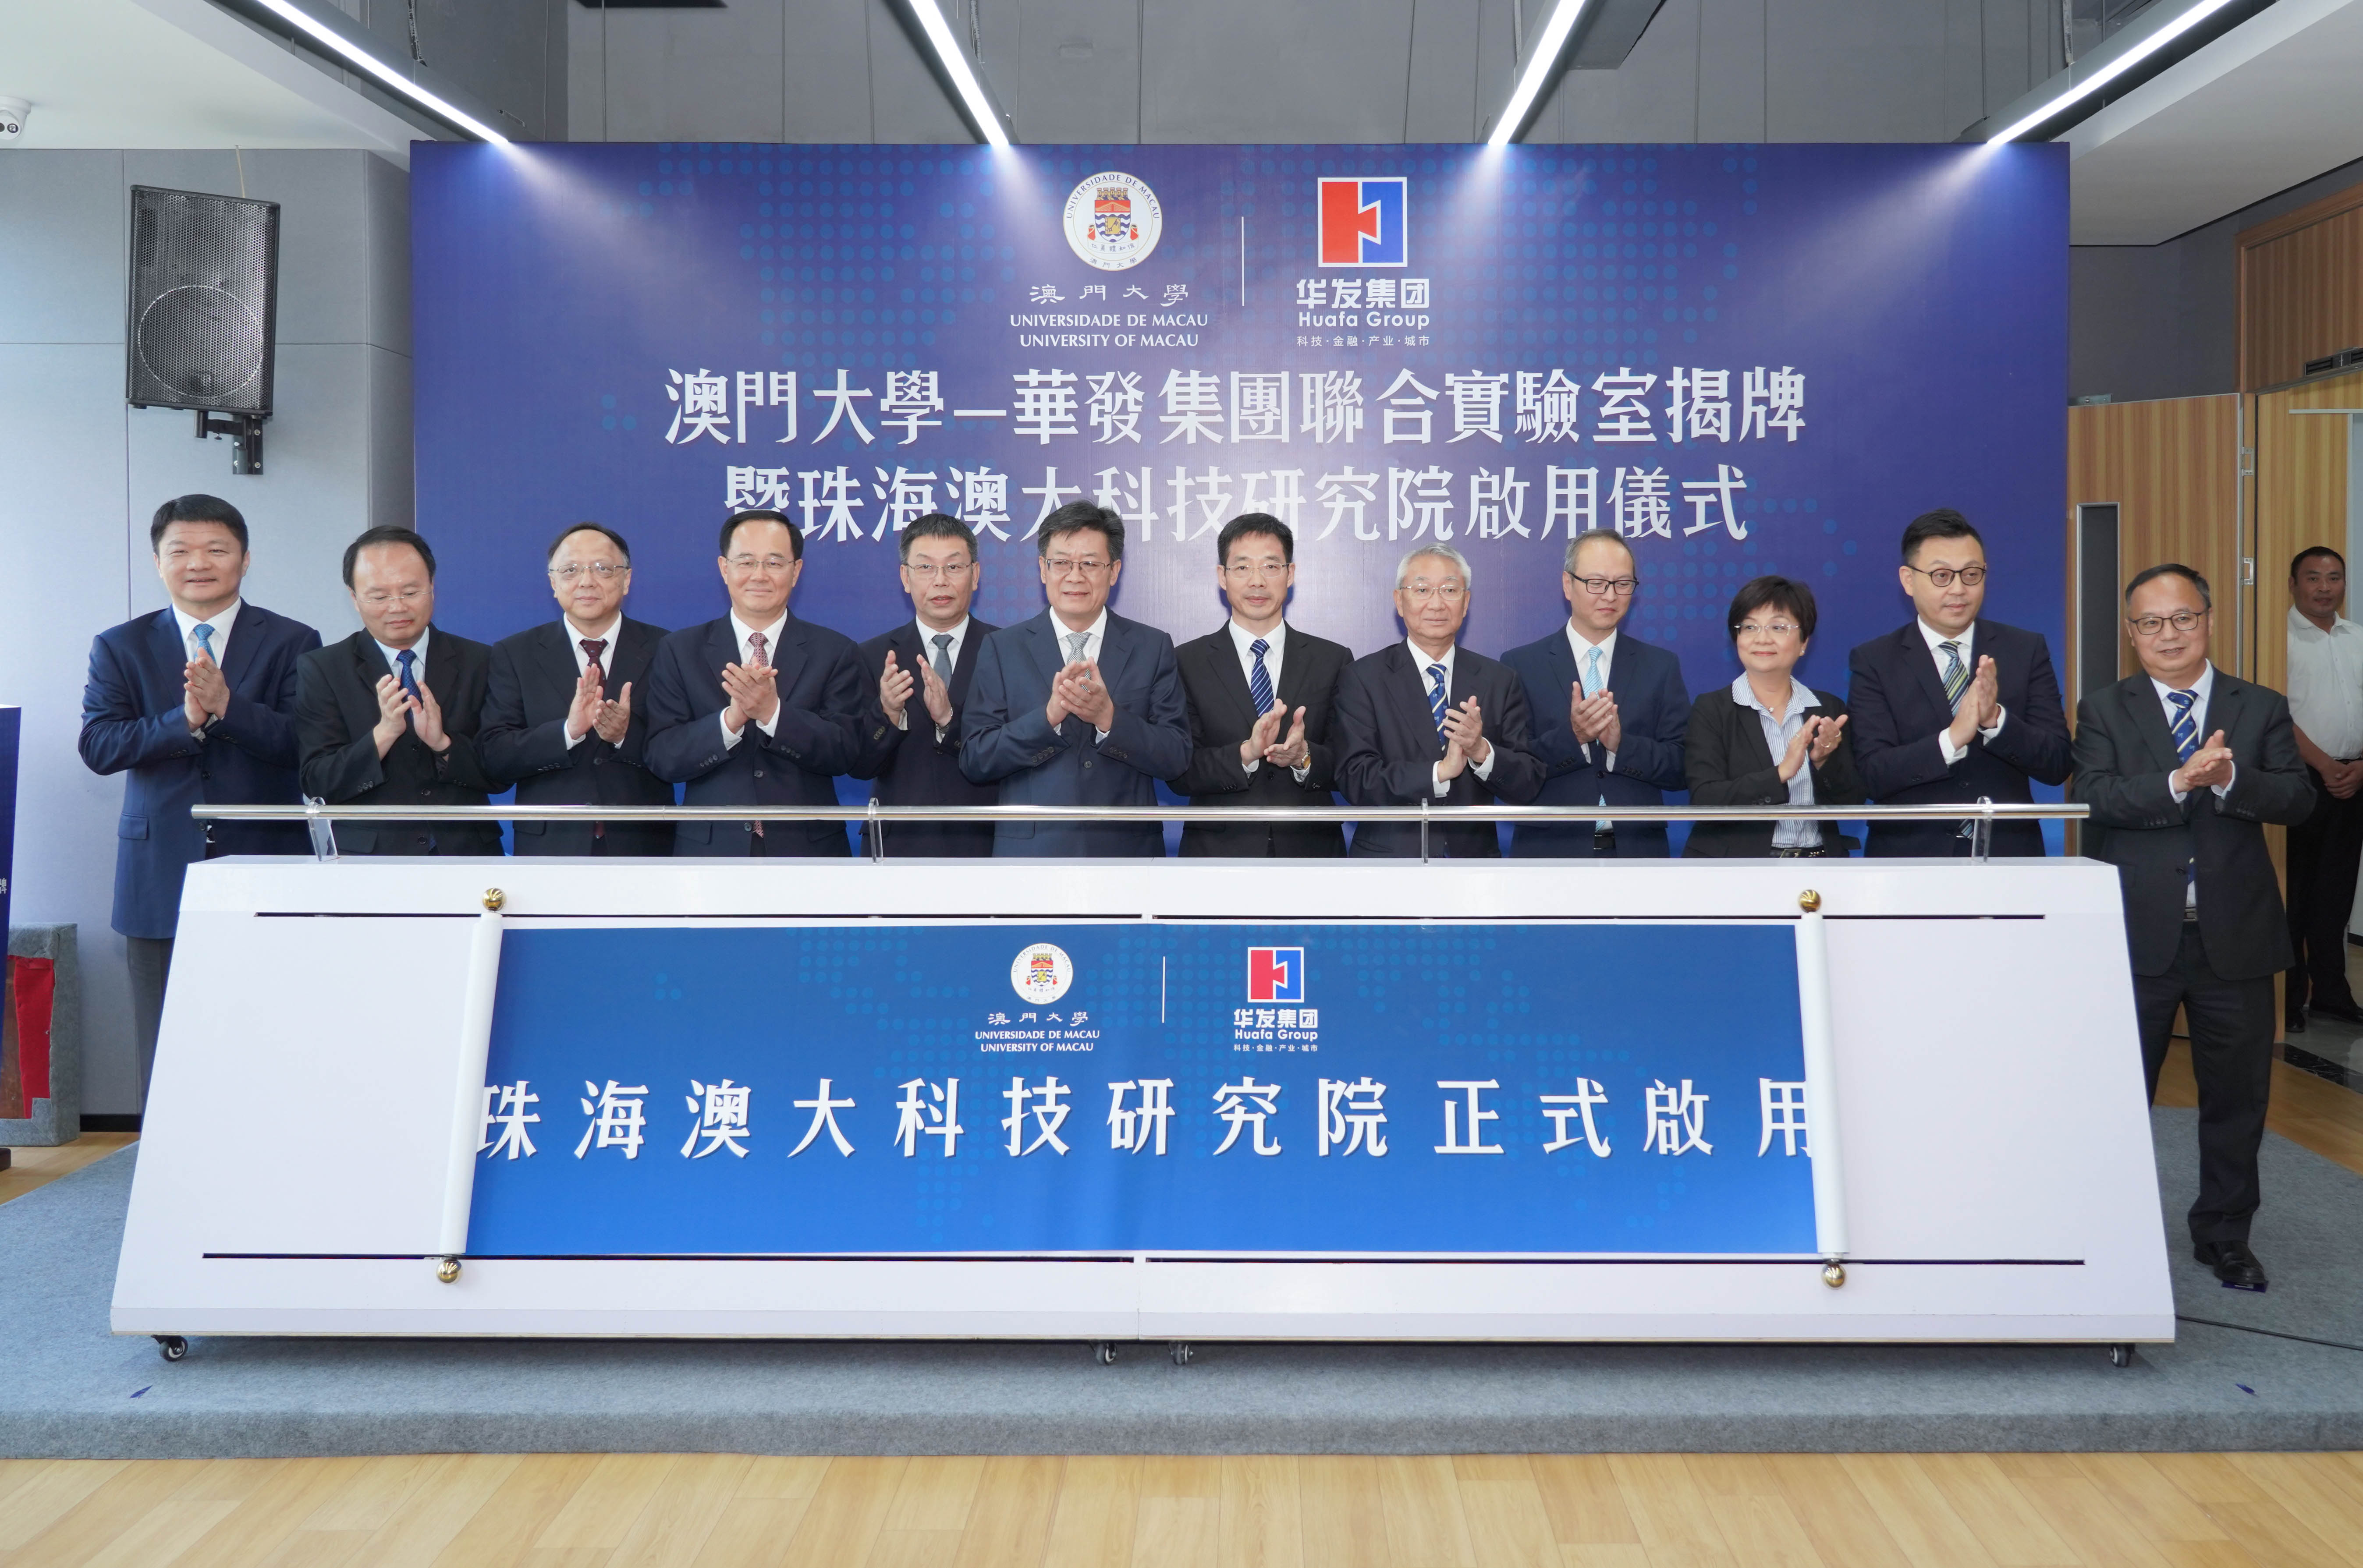 The inauguration ceremony for the UM-Huafa Group Joint Laboratory and Zhuhai UM Science & Technology Research Institute